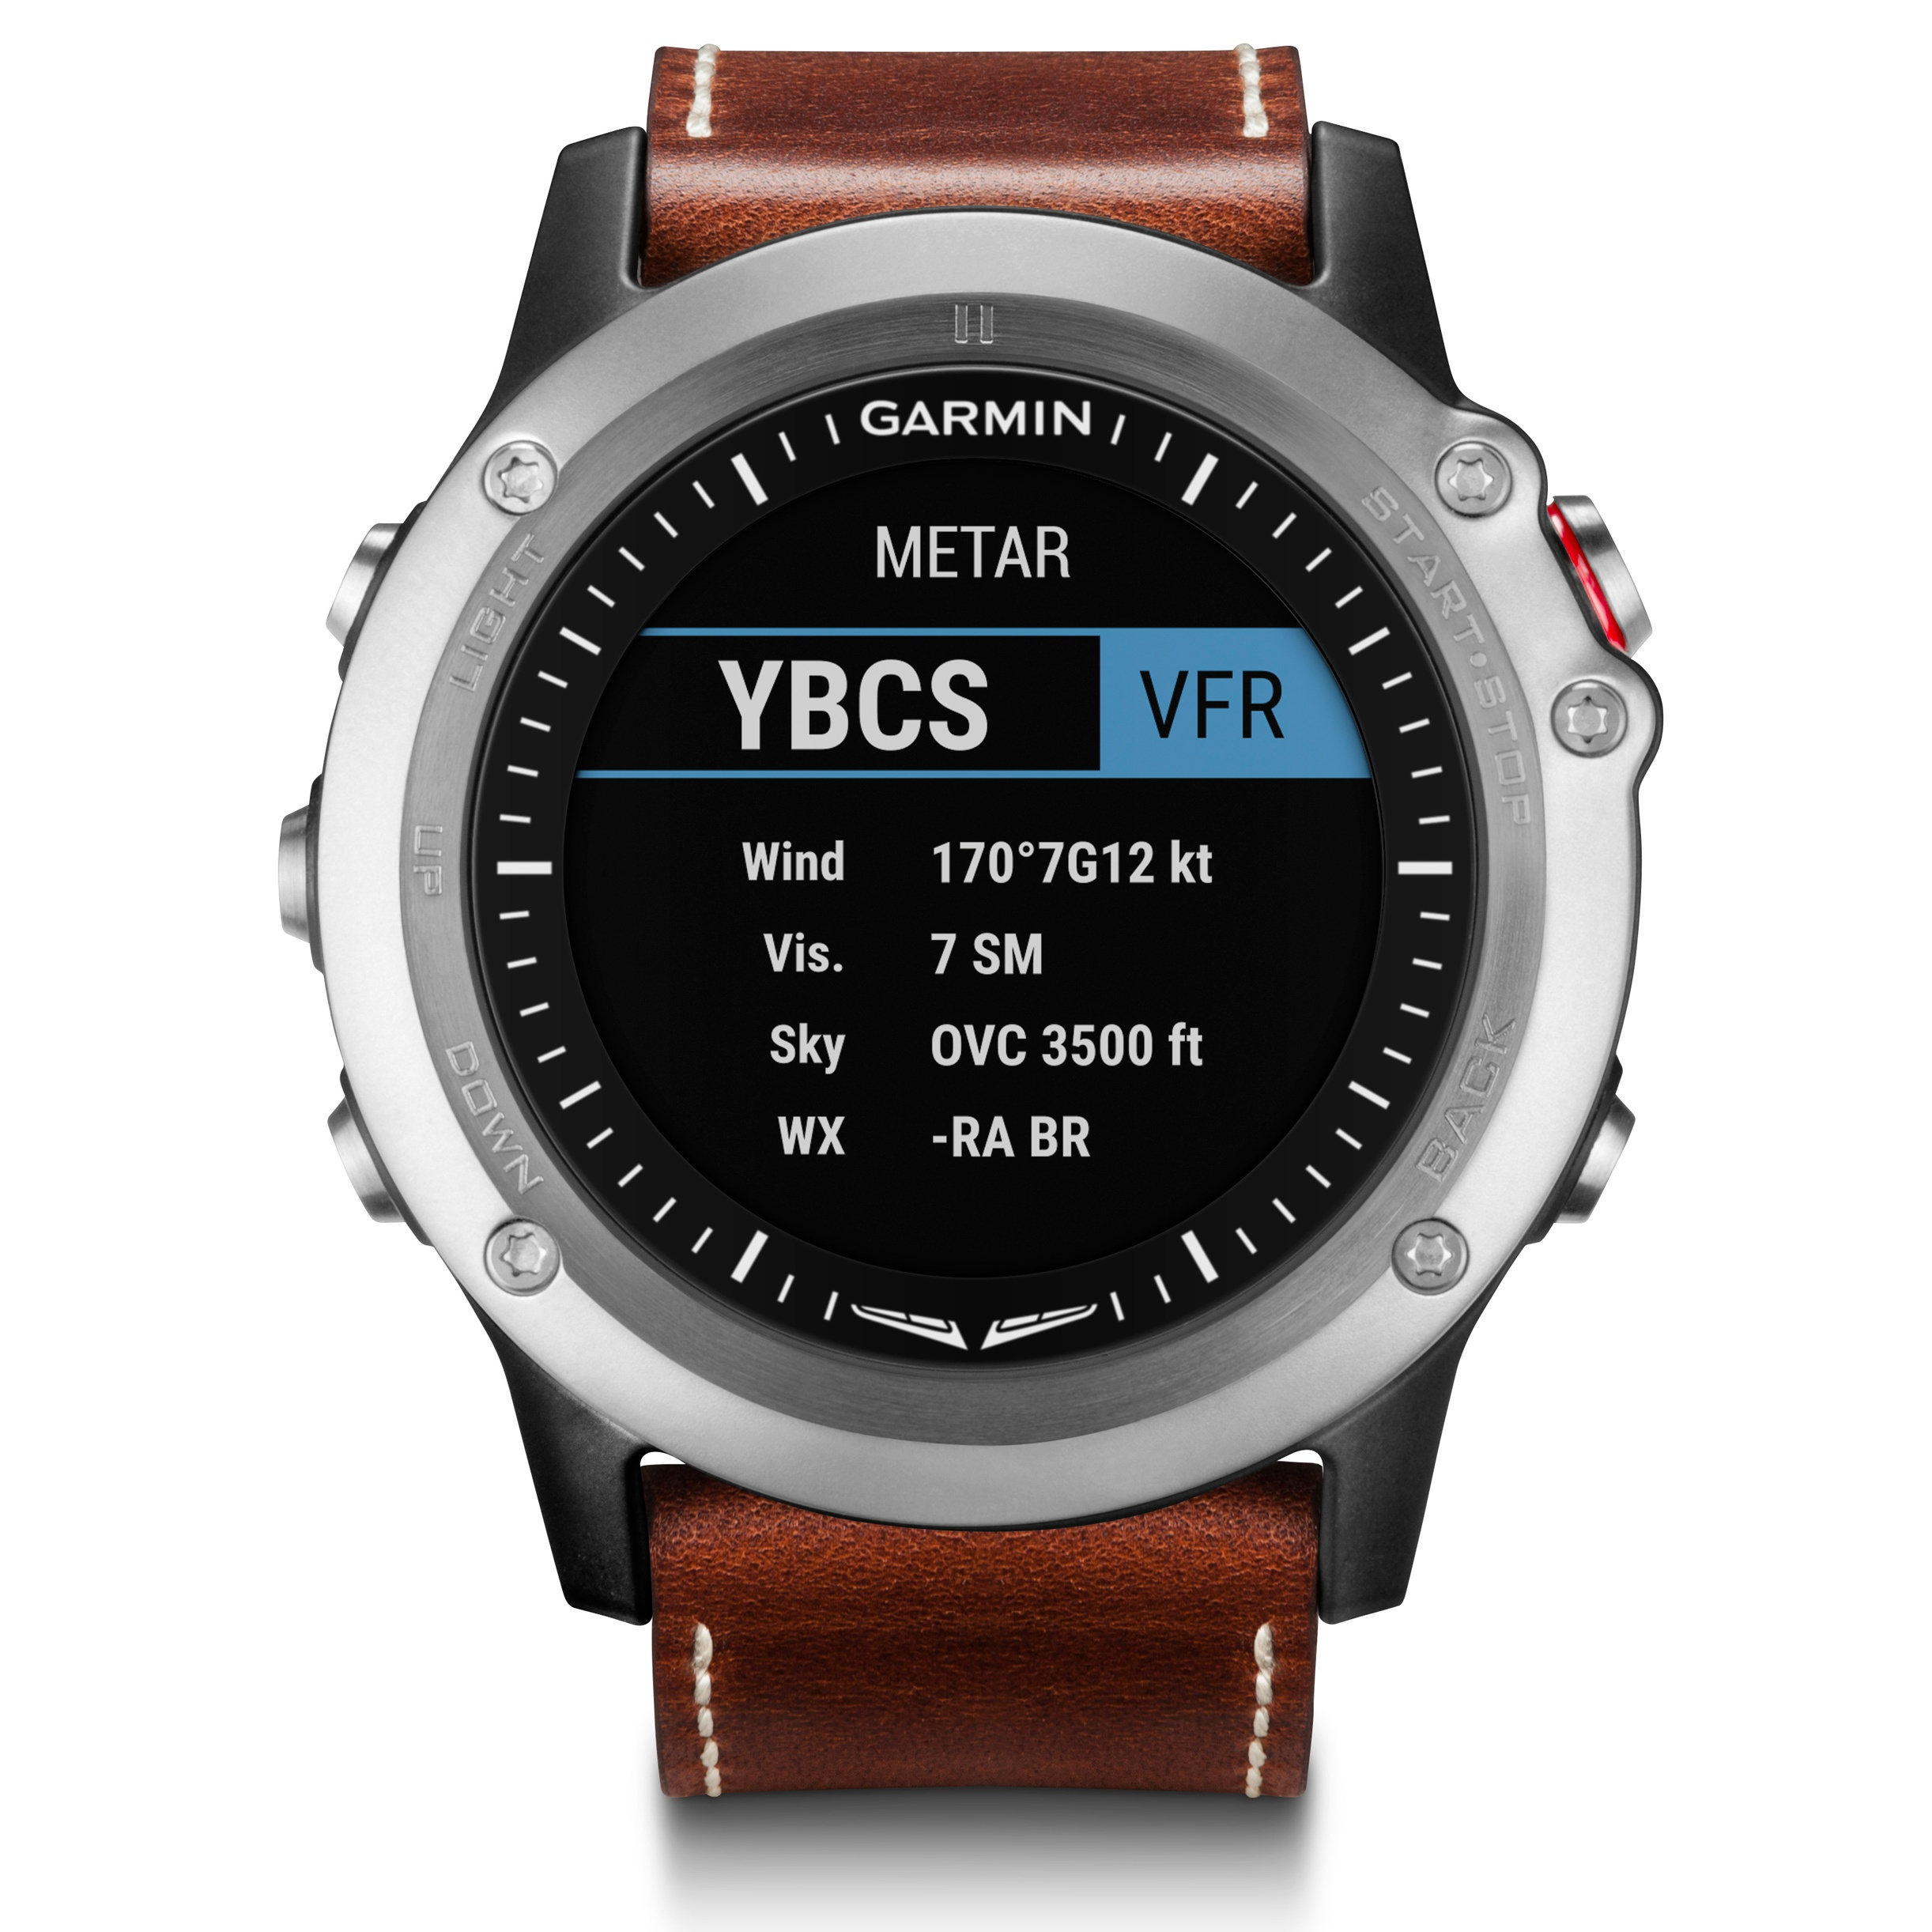 Watches Garmin Of Garmin D2 Bravo Pilot Watch